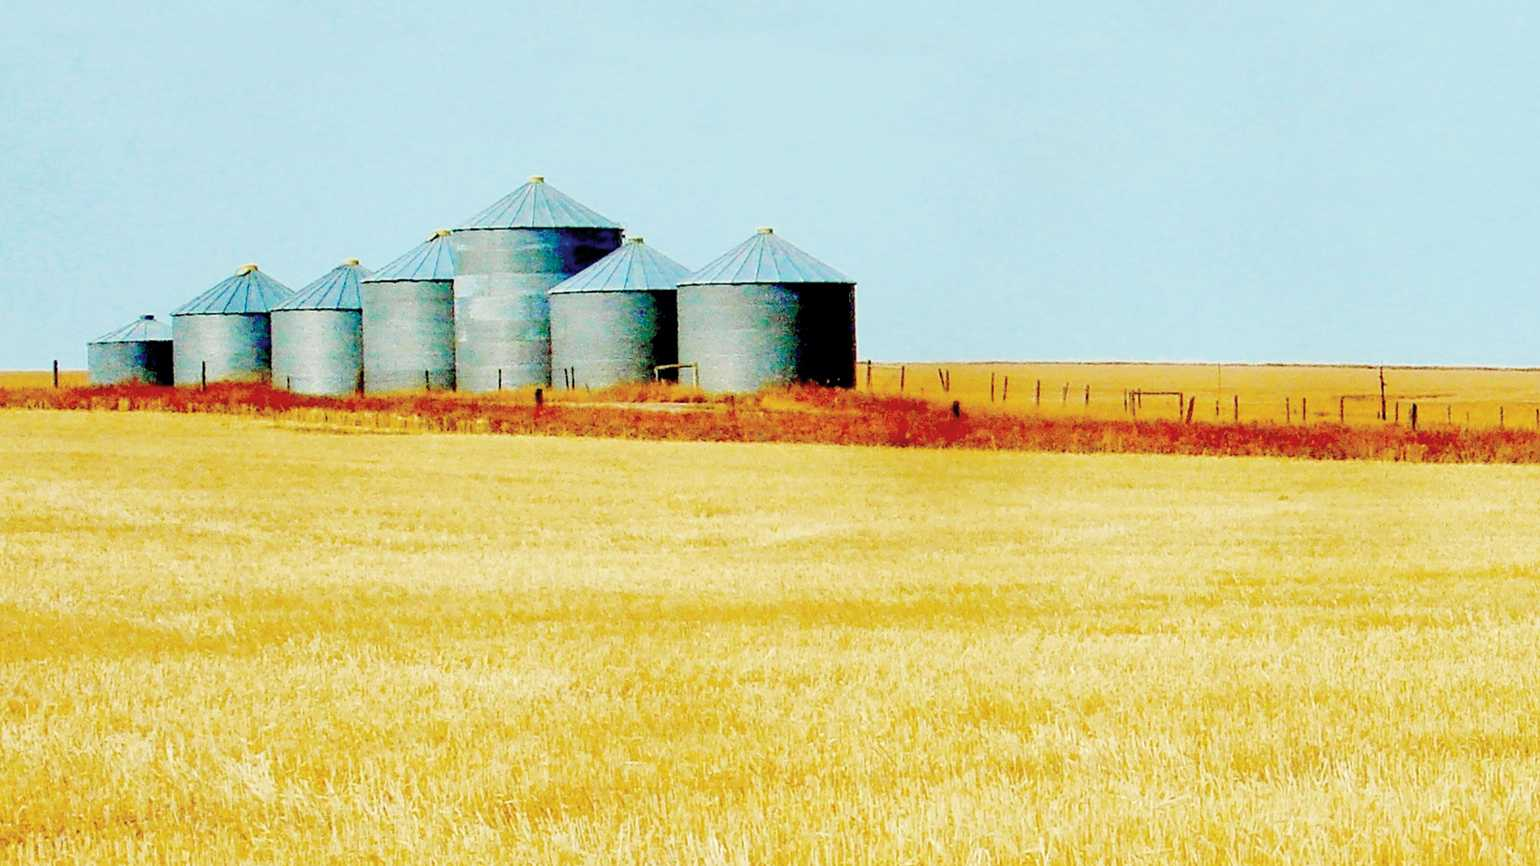 An artist's rendering of a group of silos